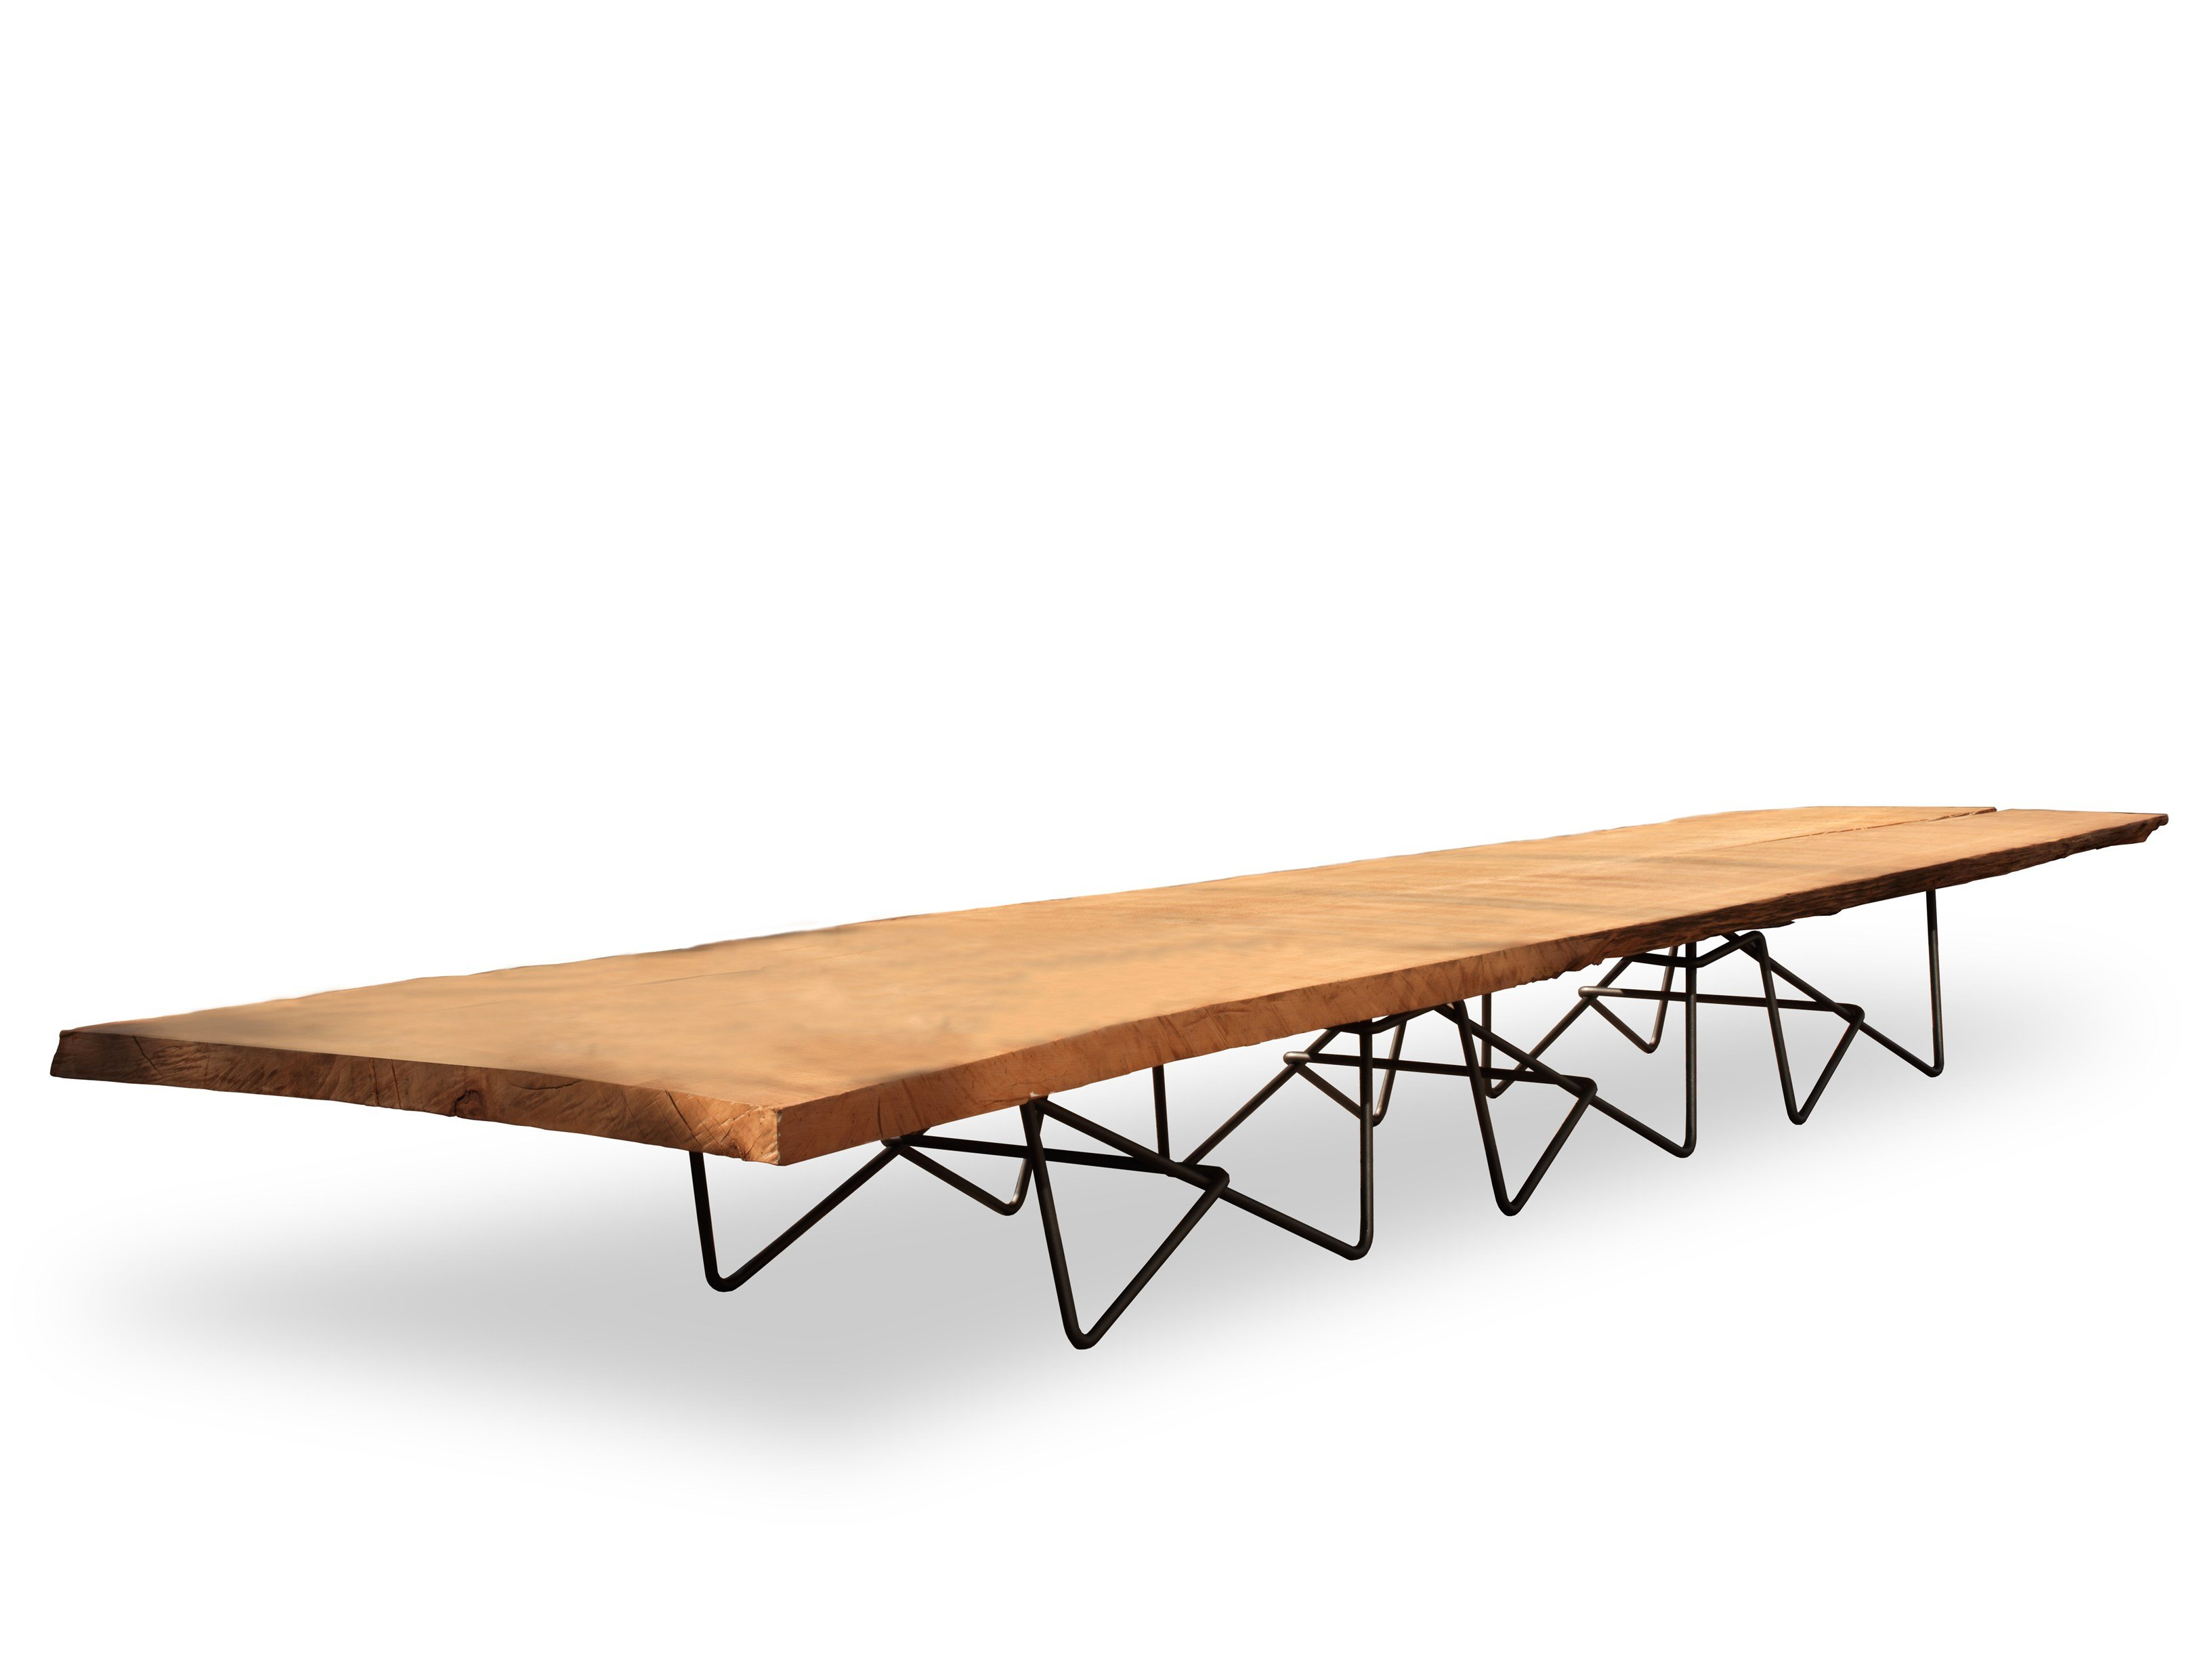 Round Kauri wood and resin table EARTH By Riva 1920 design Renzo